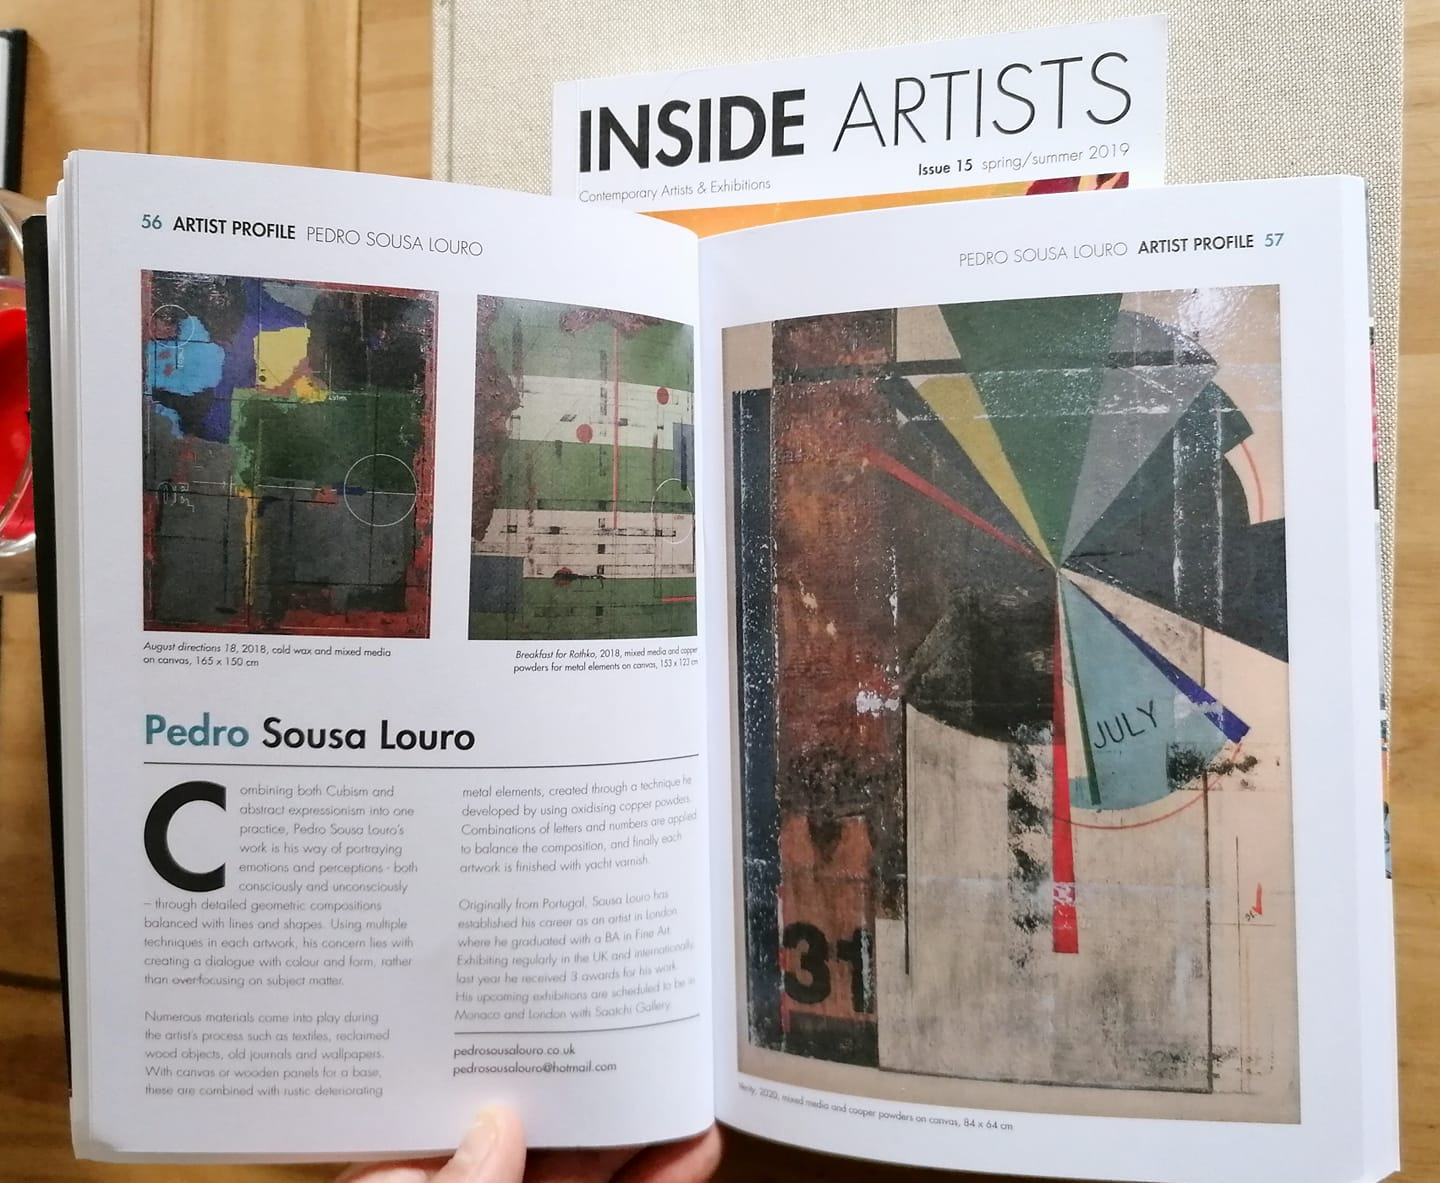 INSIDE ARTISTS MAGAZINE